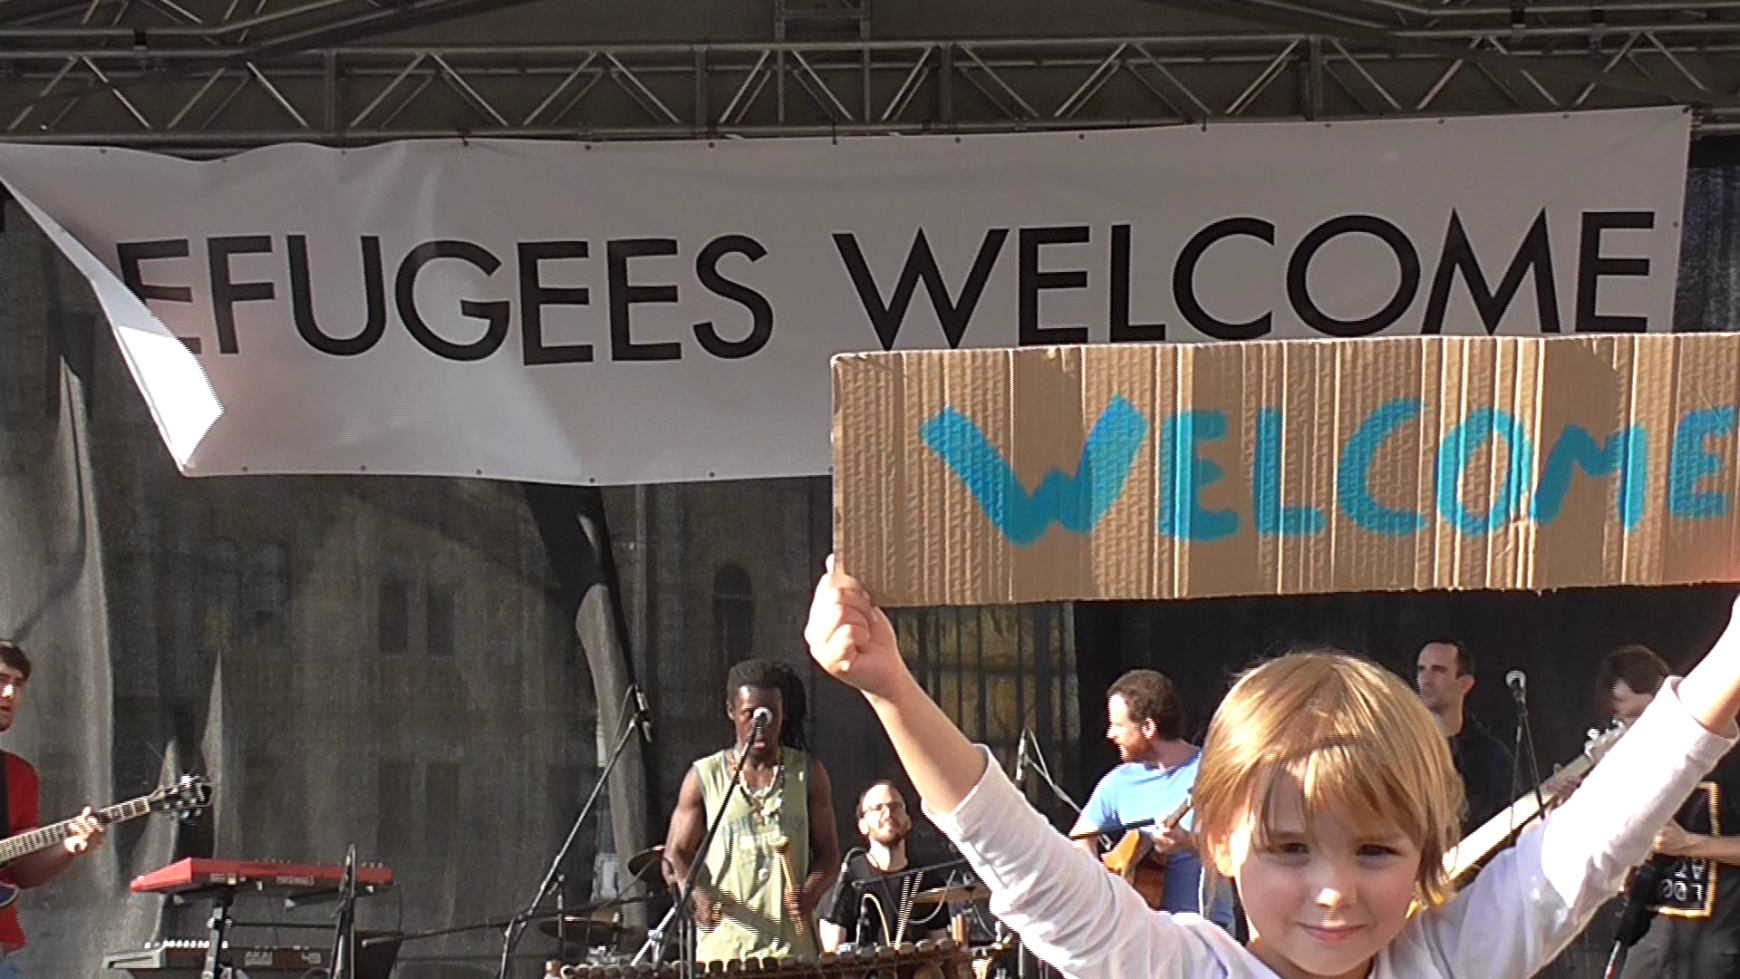 An Update on Refugees Welcome